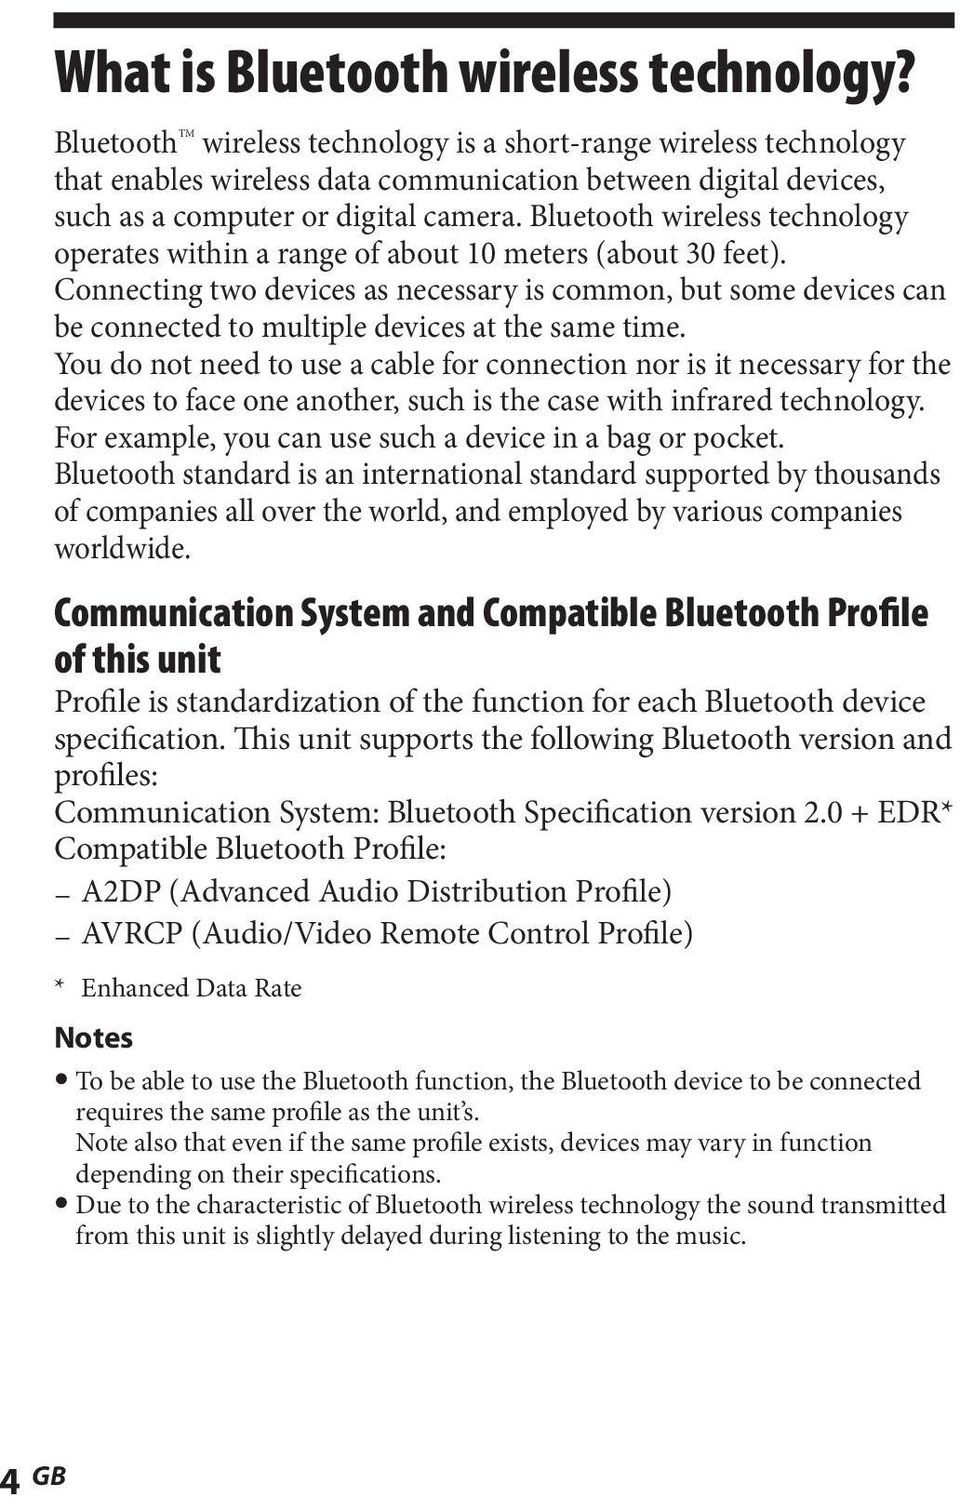 Bluetooth wireless technology operates within a range of about 10 meters (about 30 feet).